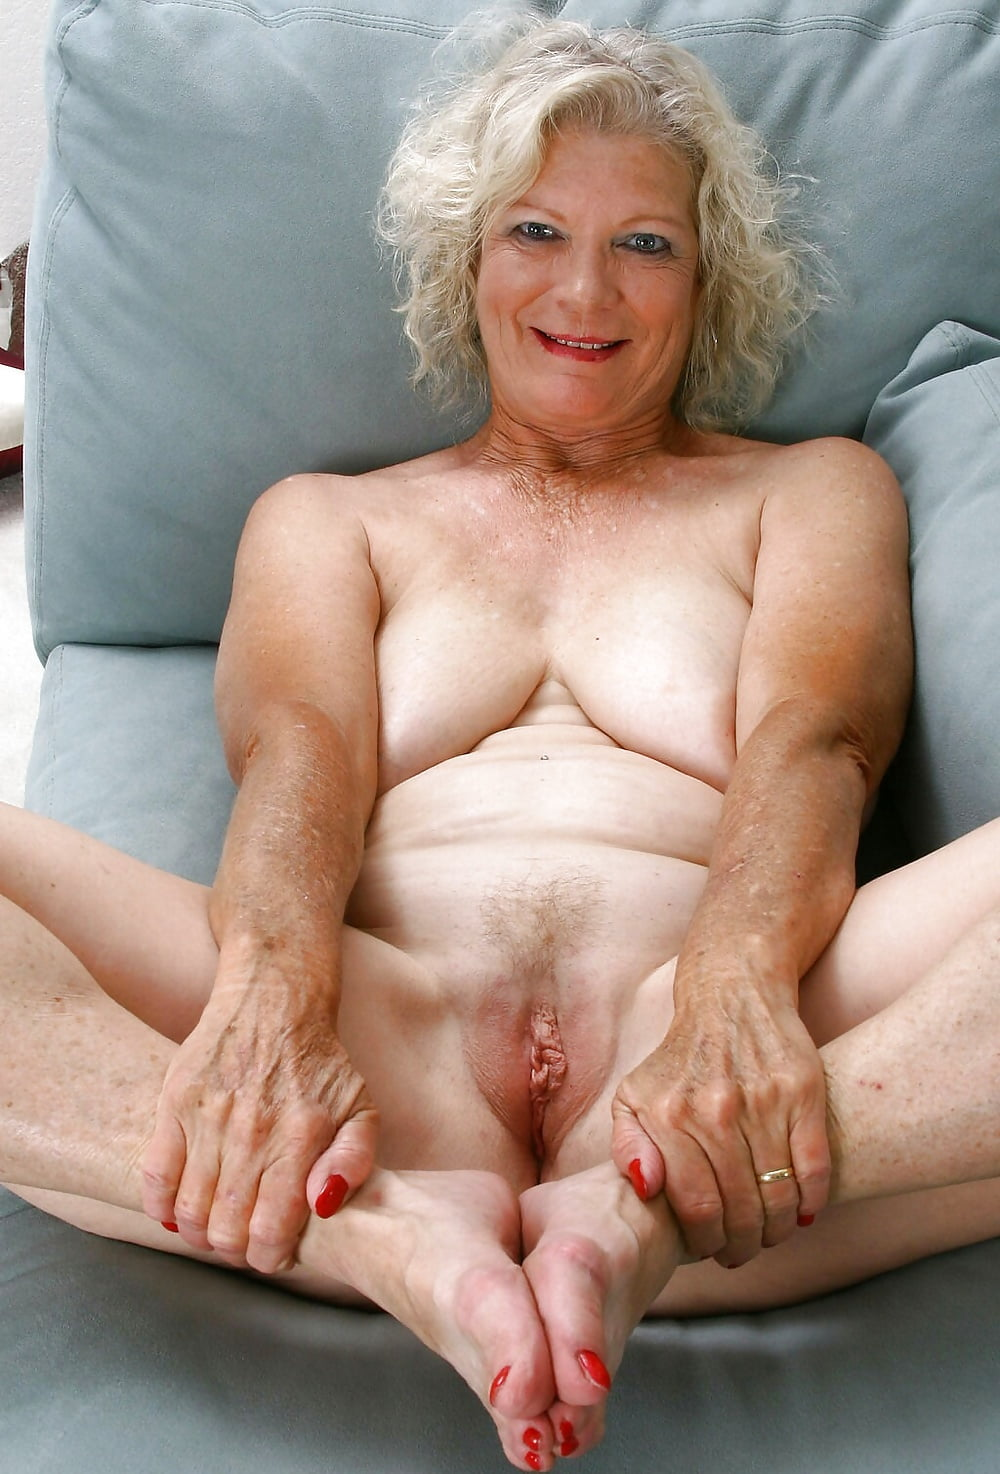 Flexible sexy older women 13